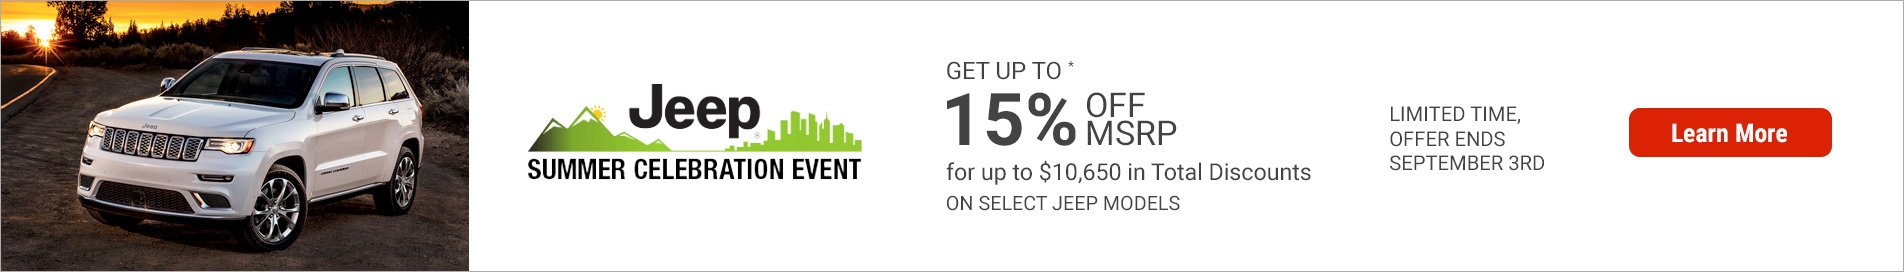 Jeep August 2019 OEM Offer